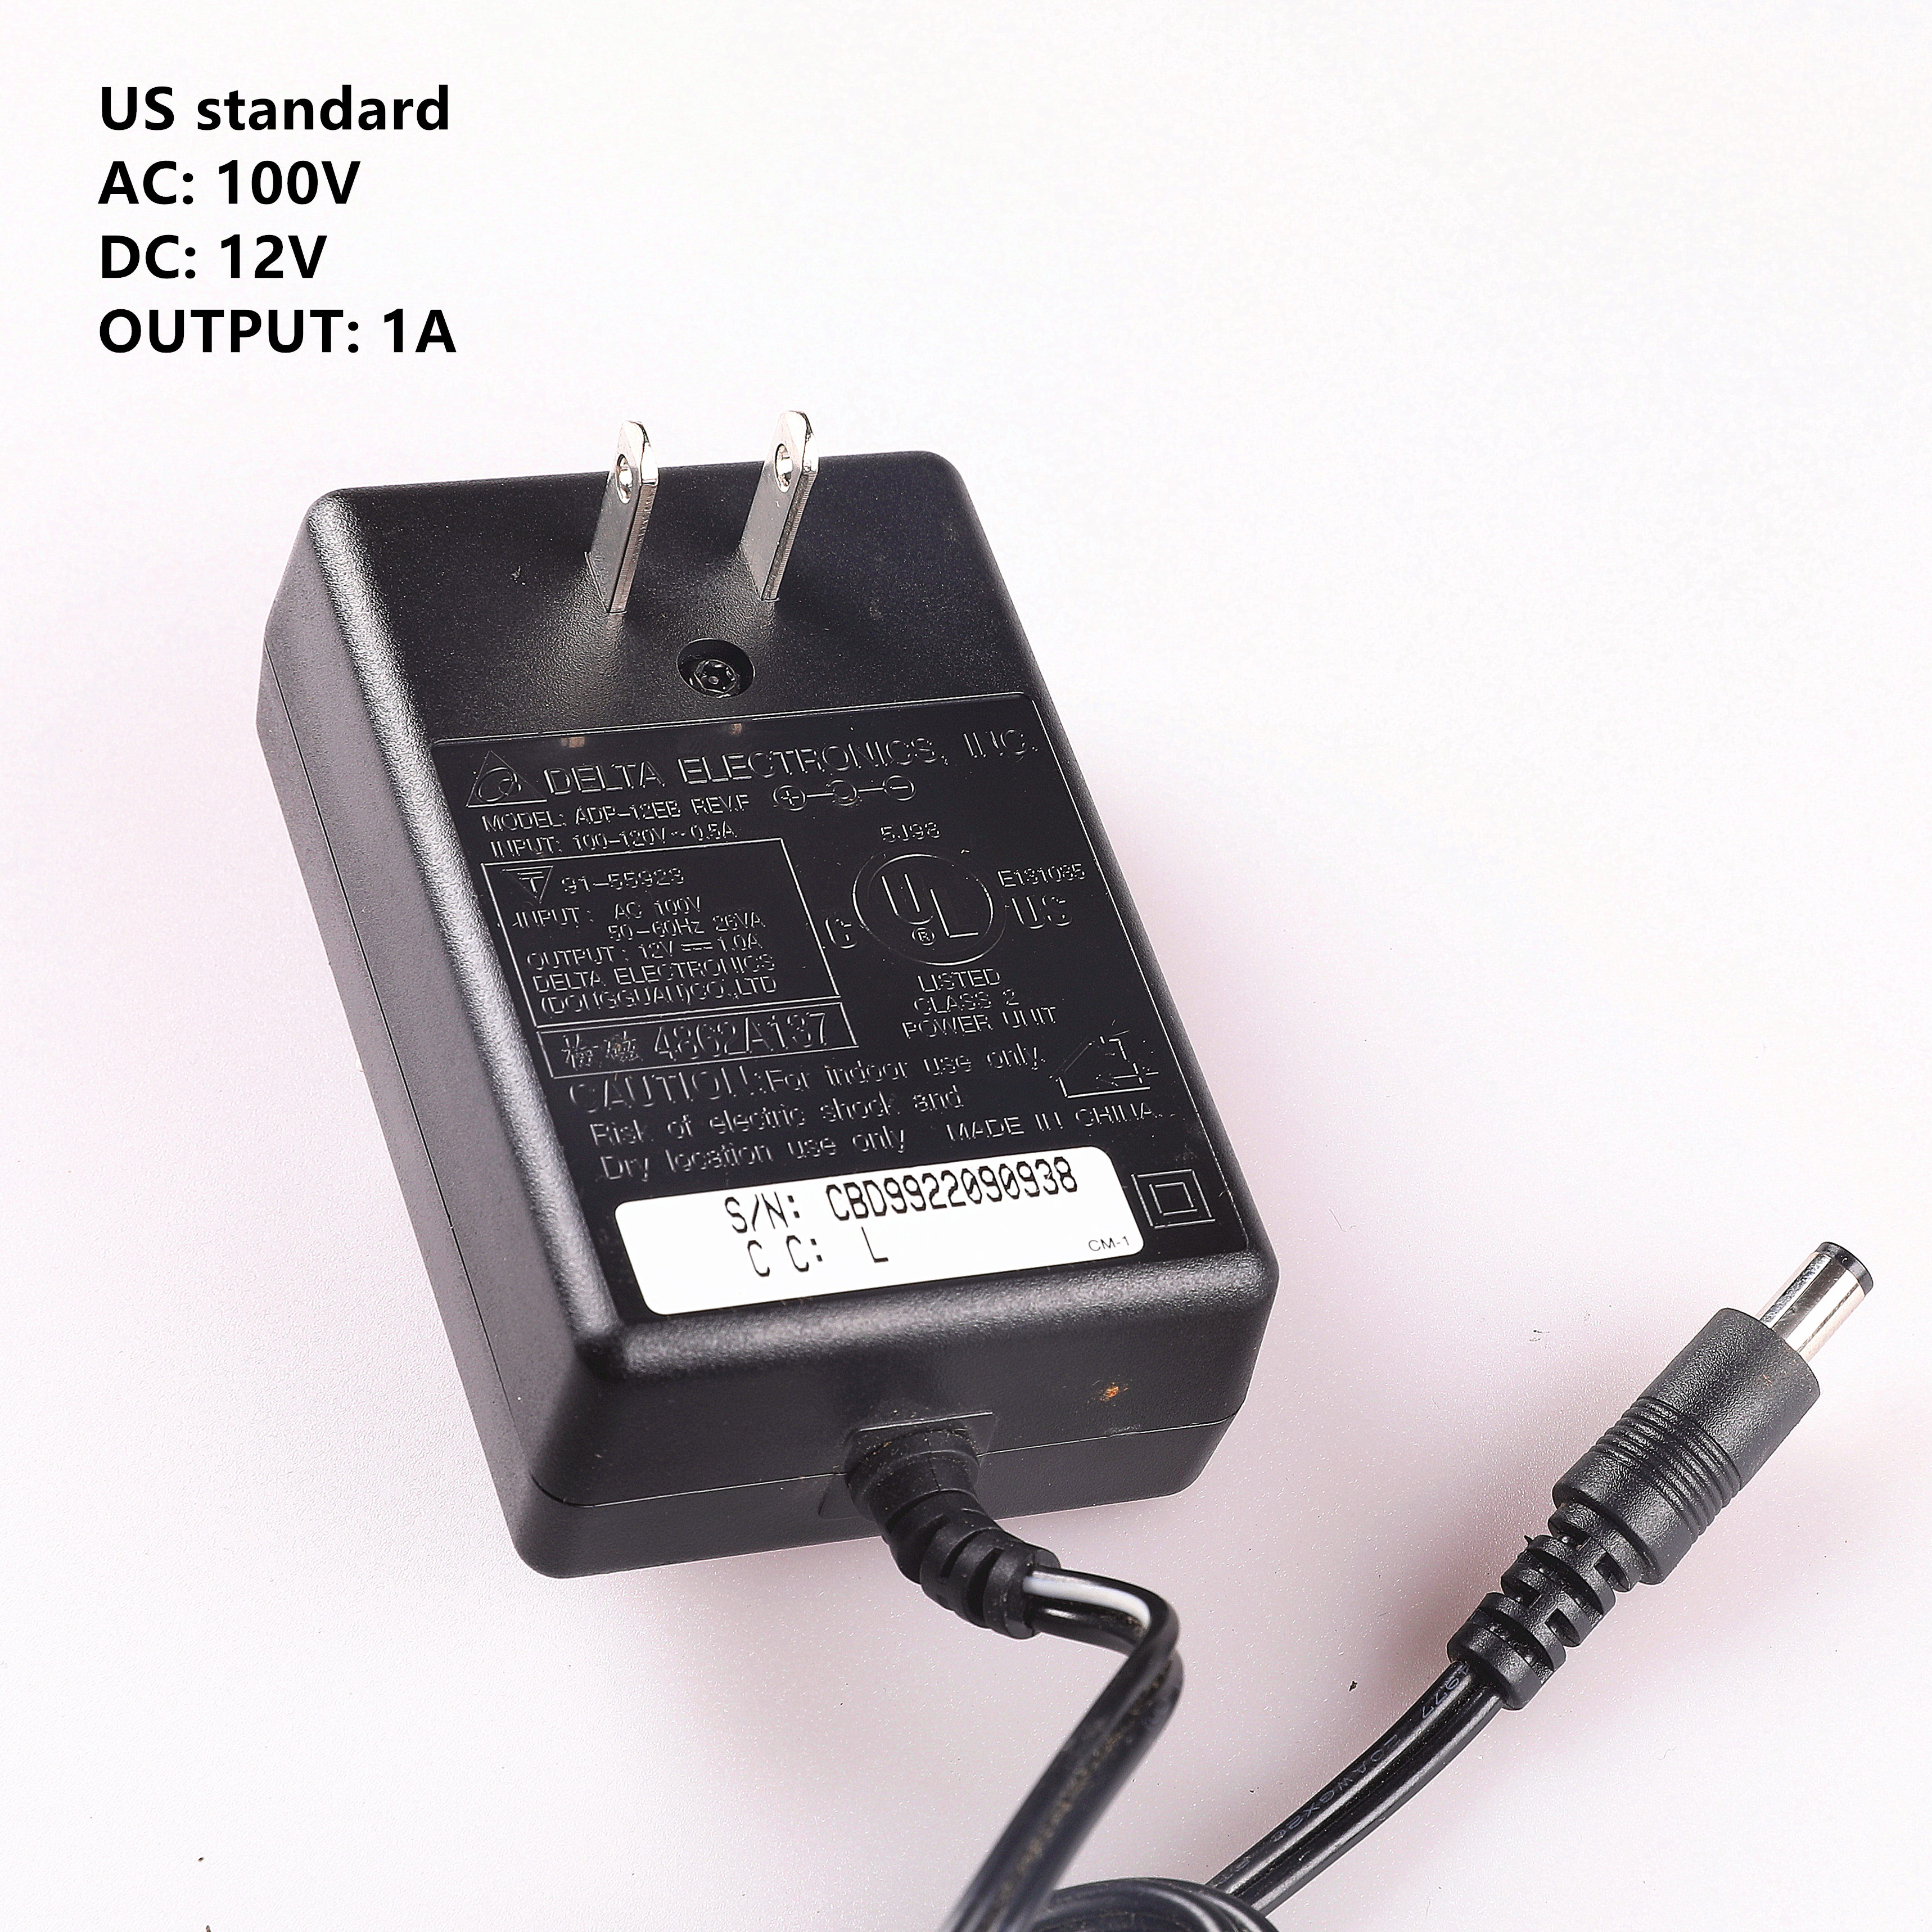 Power <font><b>Adapter</b></font> Supply DC 12V 1A 2A 3A 5A 6A 8A DC 5 12 <font><b>24</b></font> <font><b>V</b></font> Volt Lighting Transformers LED Driver Power <font><b>Adapter</b></font> Strip Lamp image